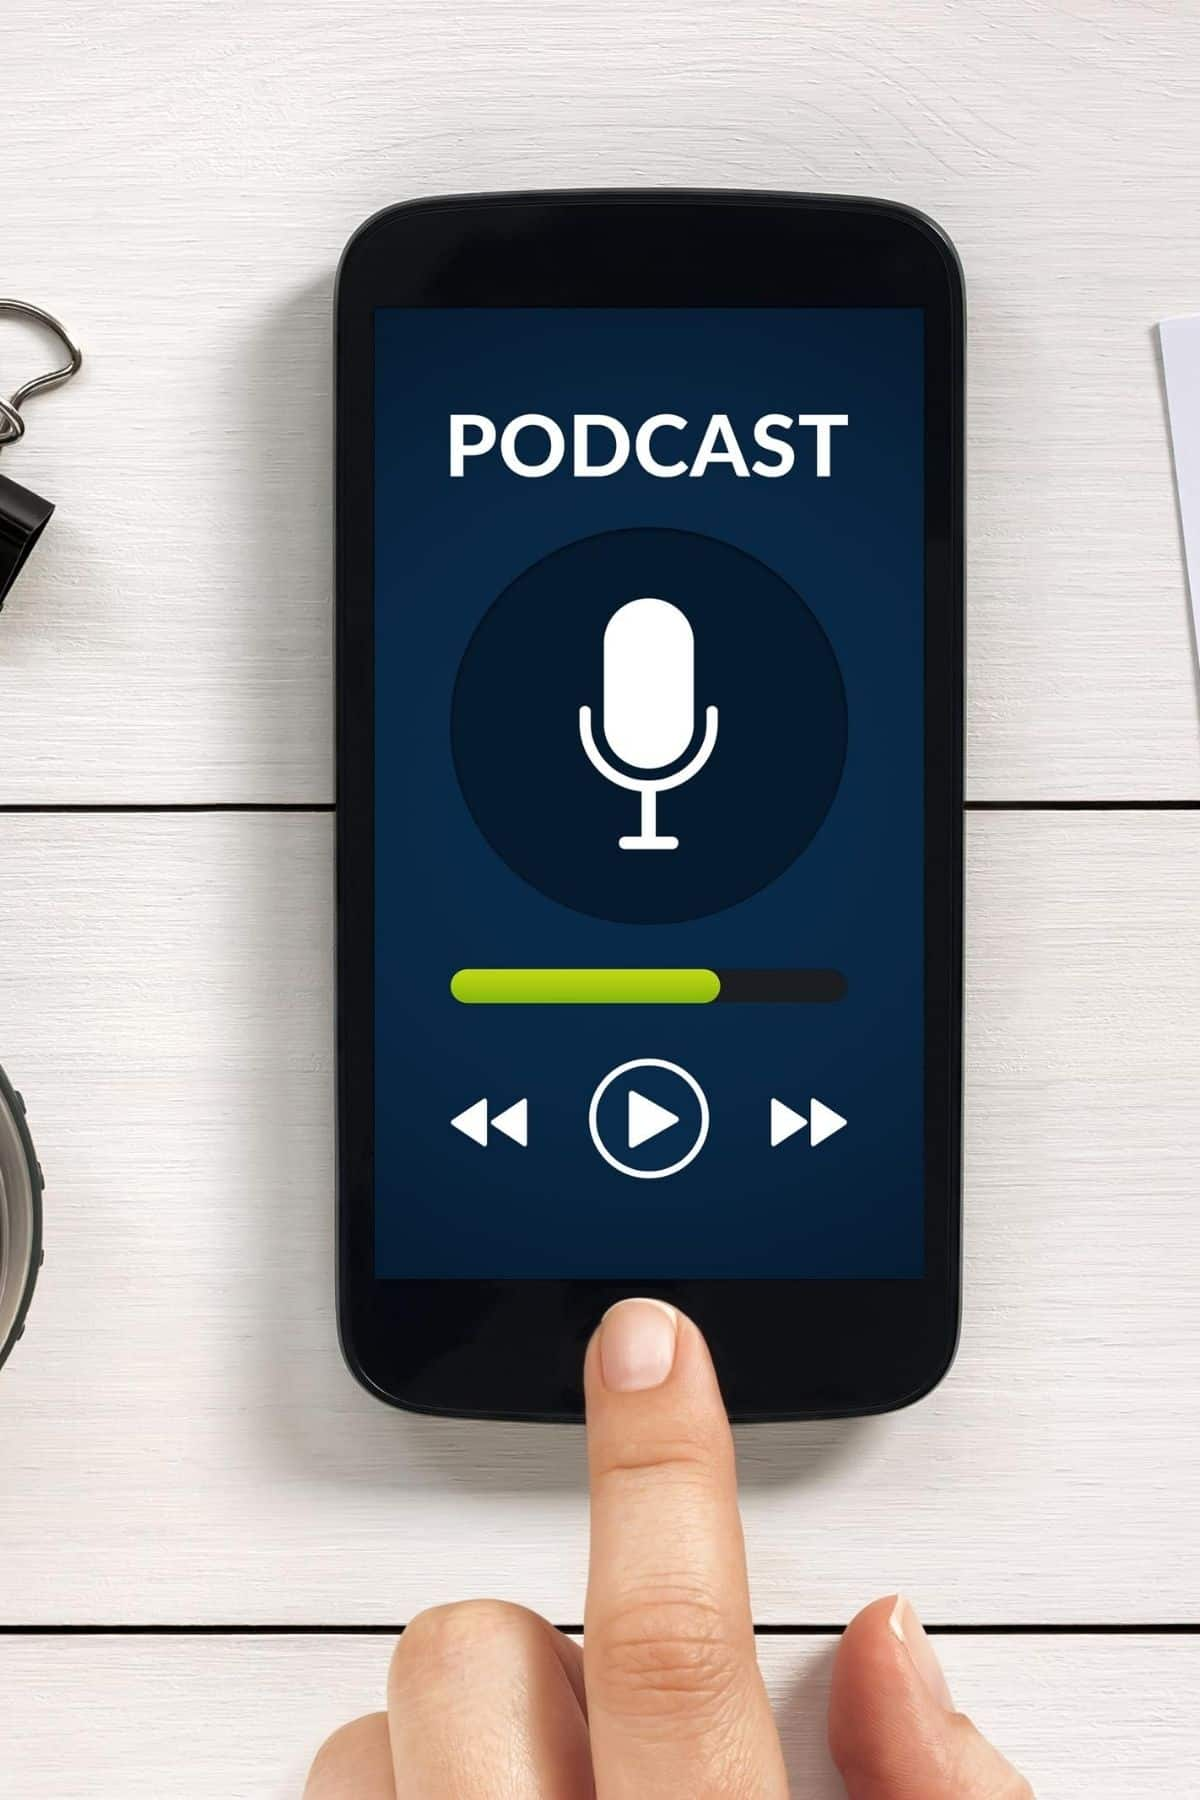 iPhone with a graphic of a podcast